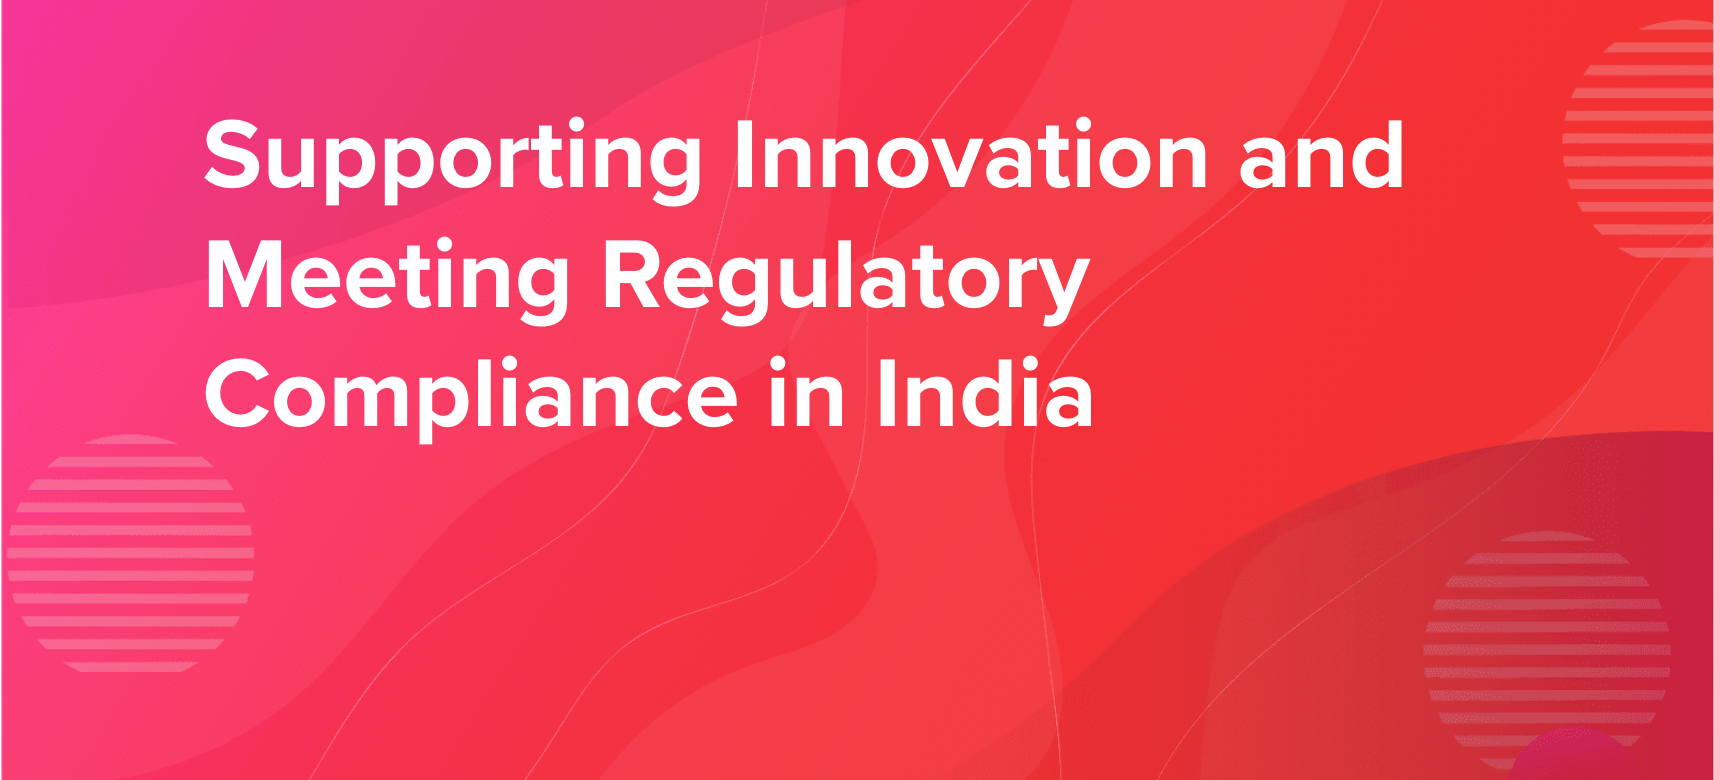 Compliance and Real-time Innovation in India